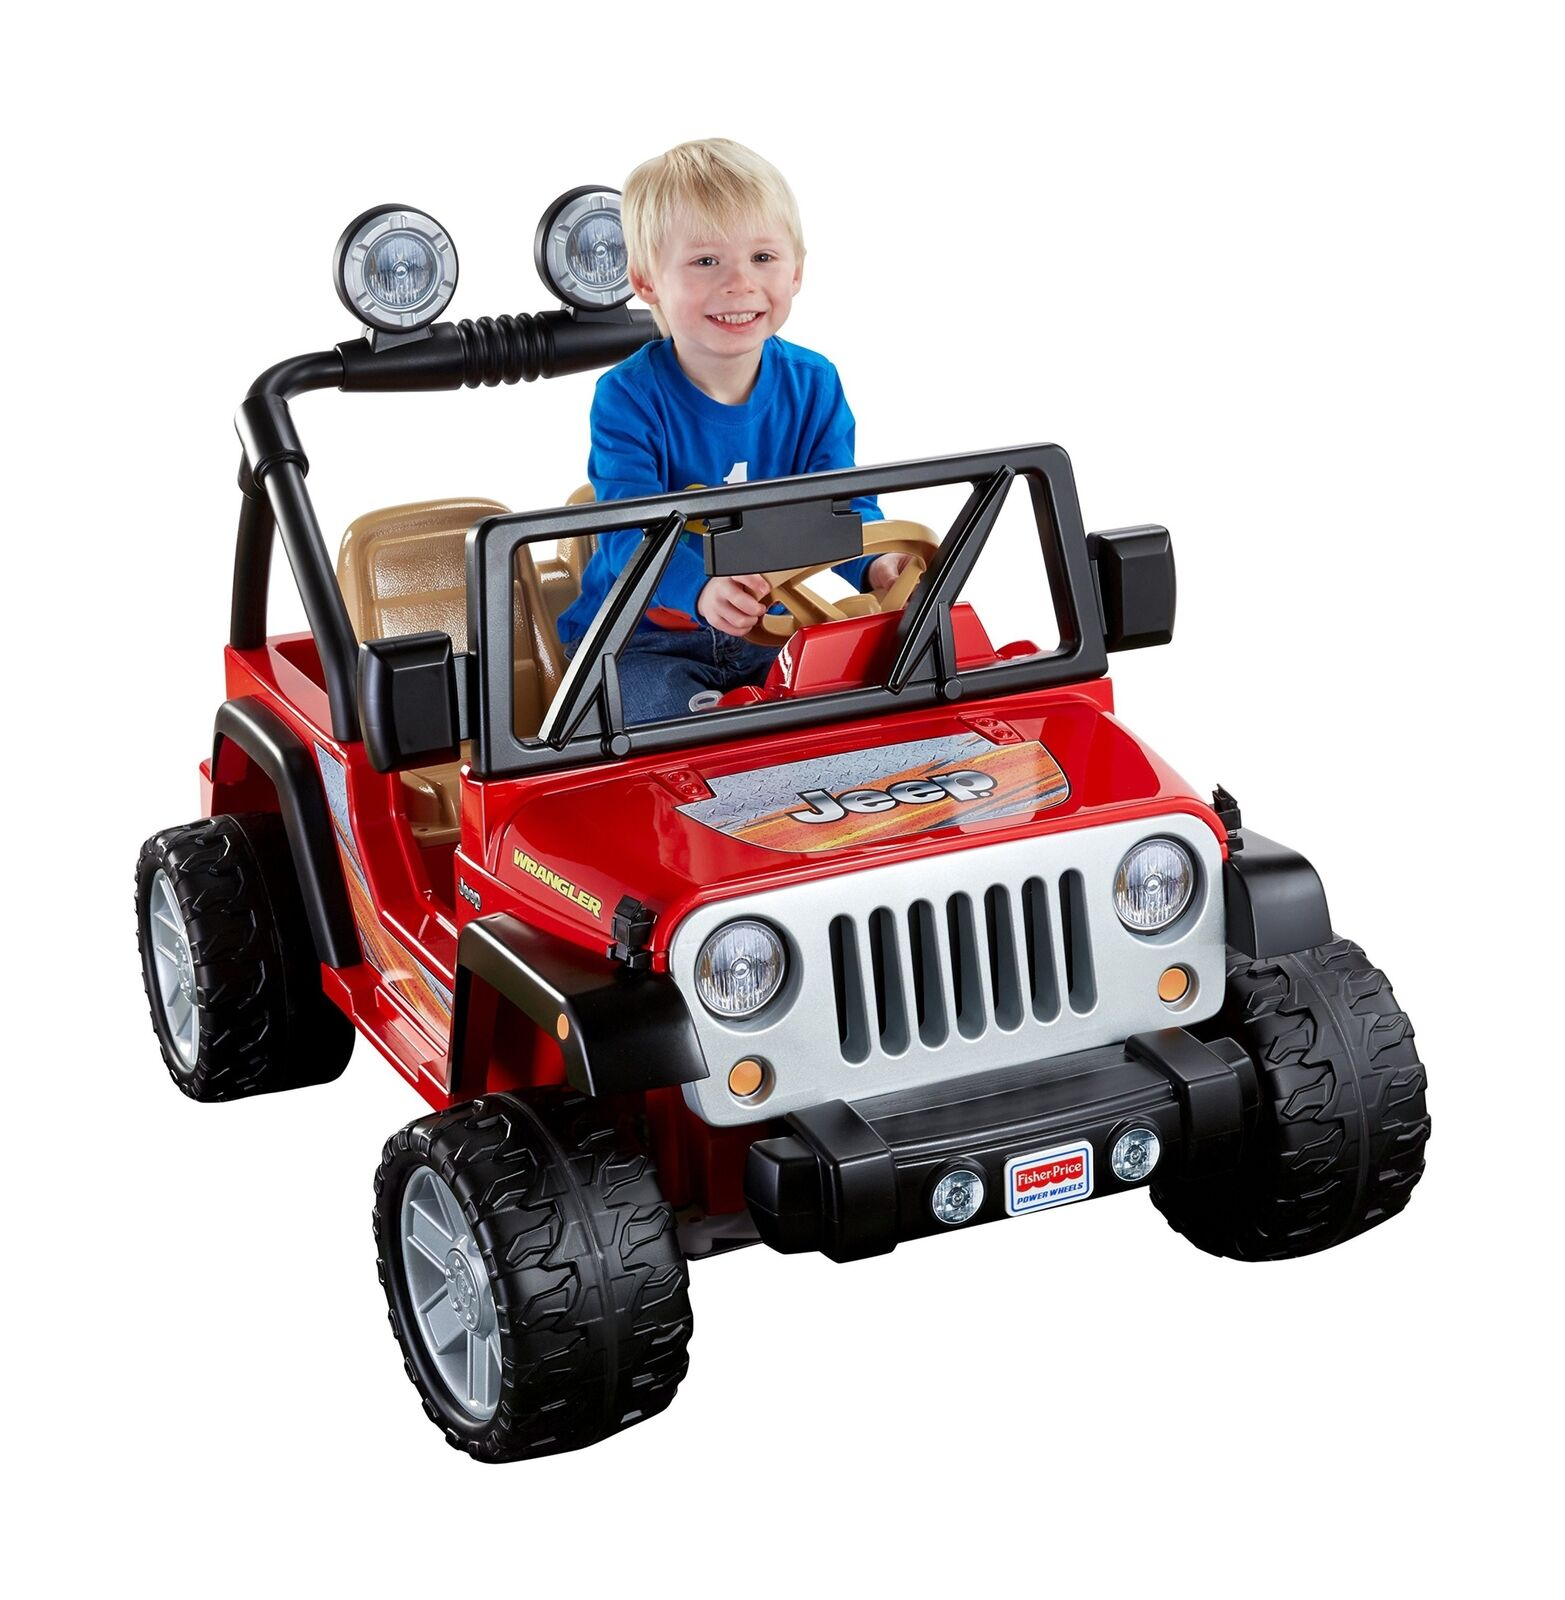 Power Wheels Jeep Wrangler 12V Toy Ride-On Racing Racing Racing Adventure Vehicle Toy Red 254ed3